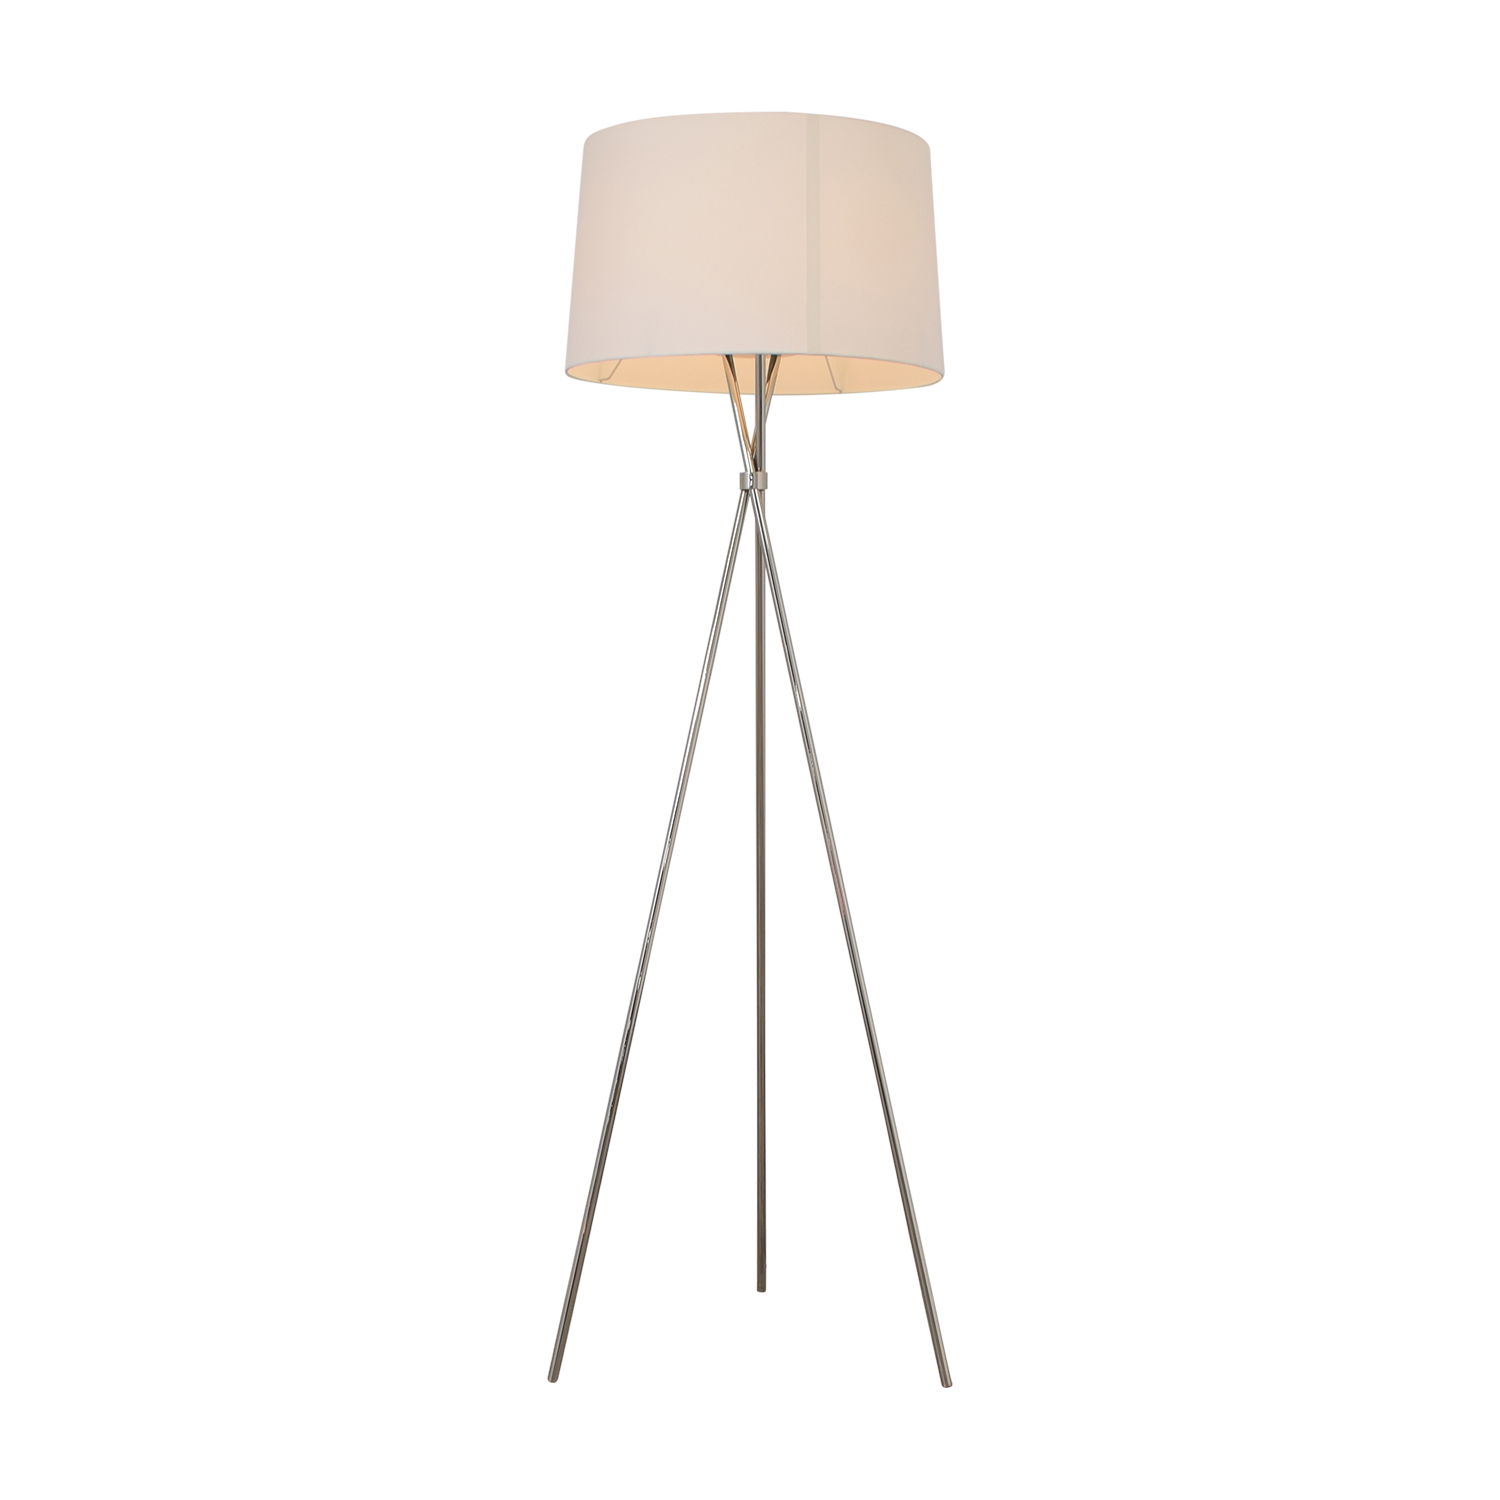 Design Within Reach Design Within Reach Tripod Floor Lamp used